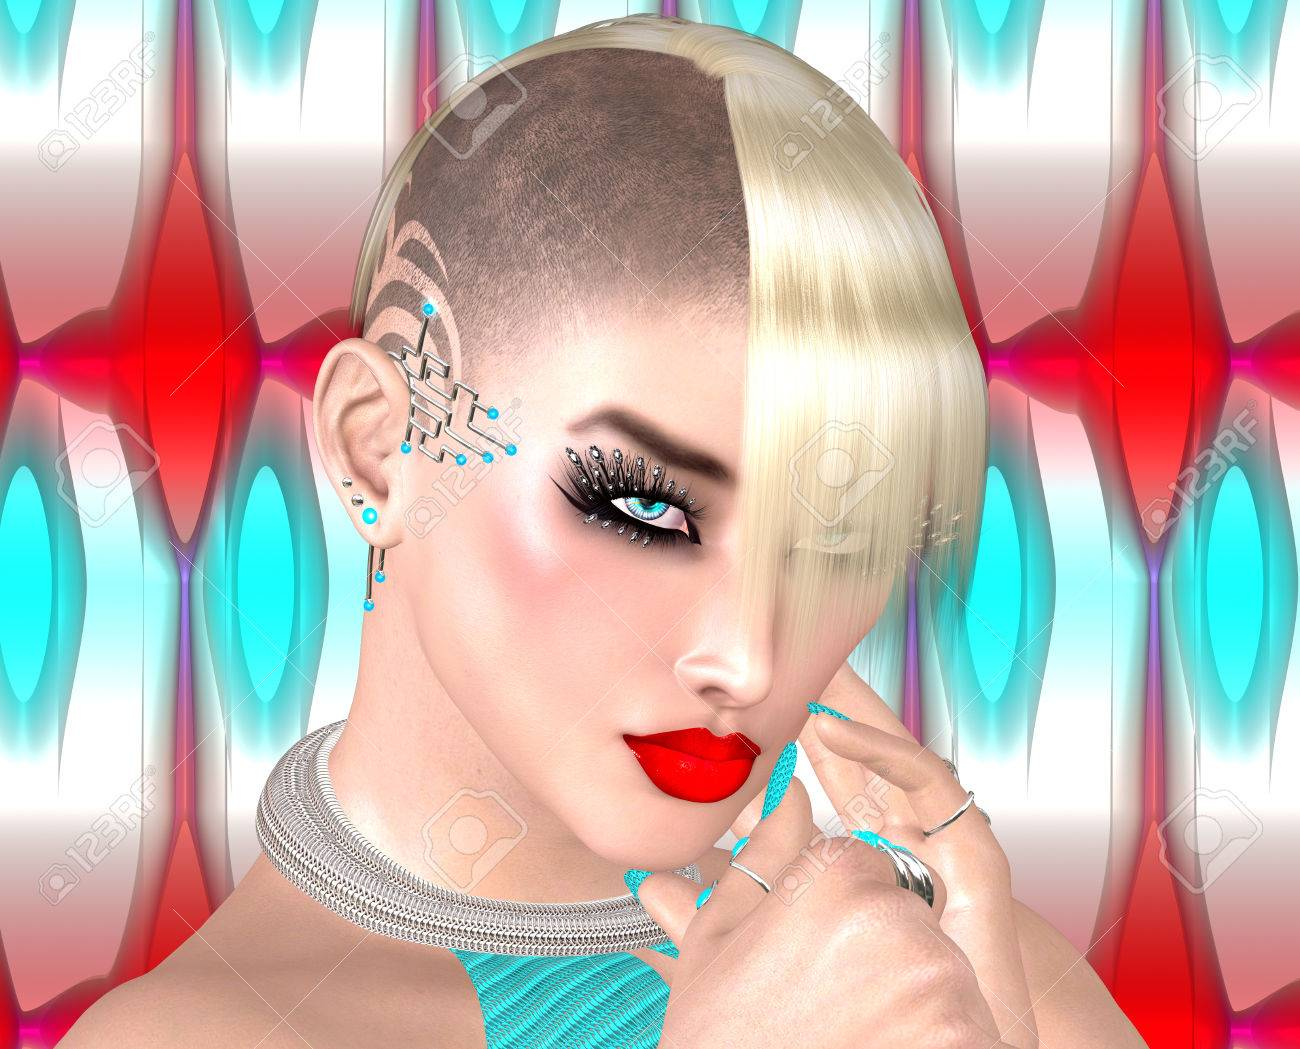 Punk Girl With Mohawk Hairstyle On Red White And Blue Abstract